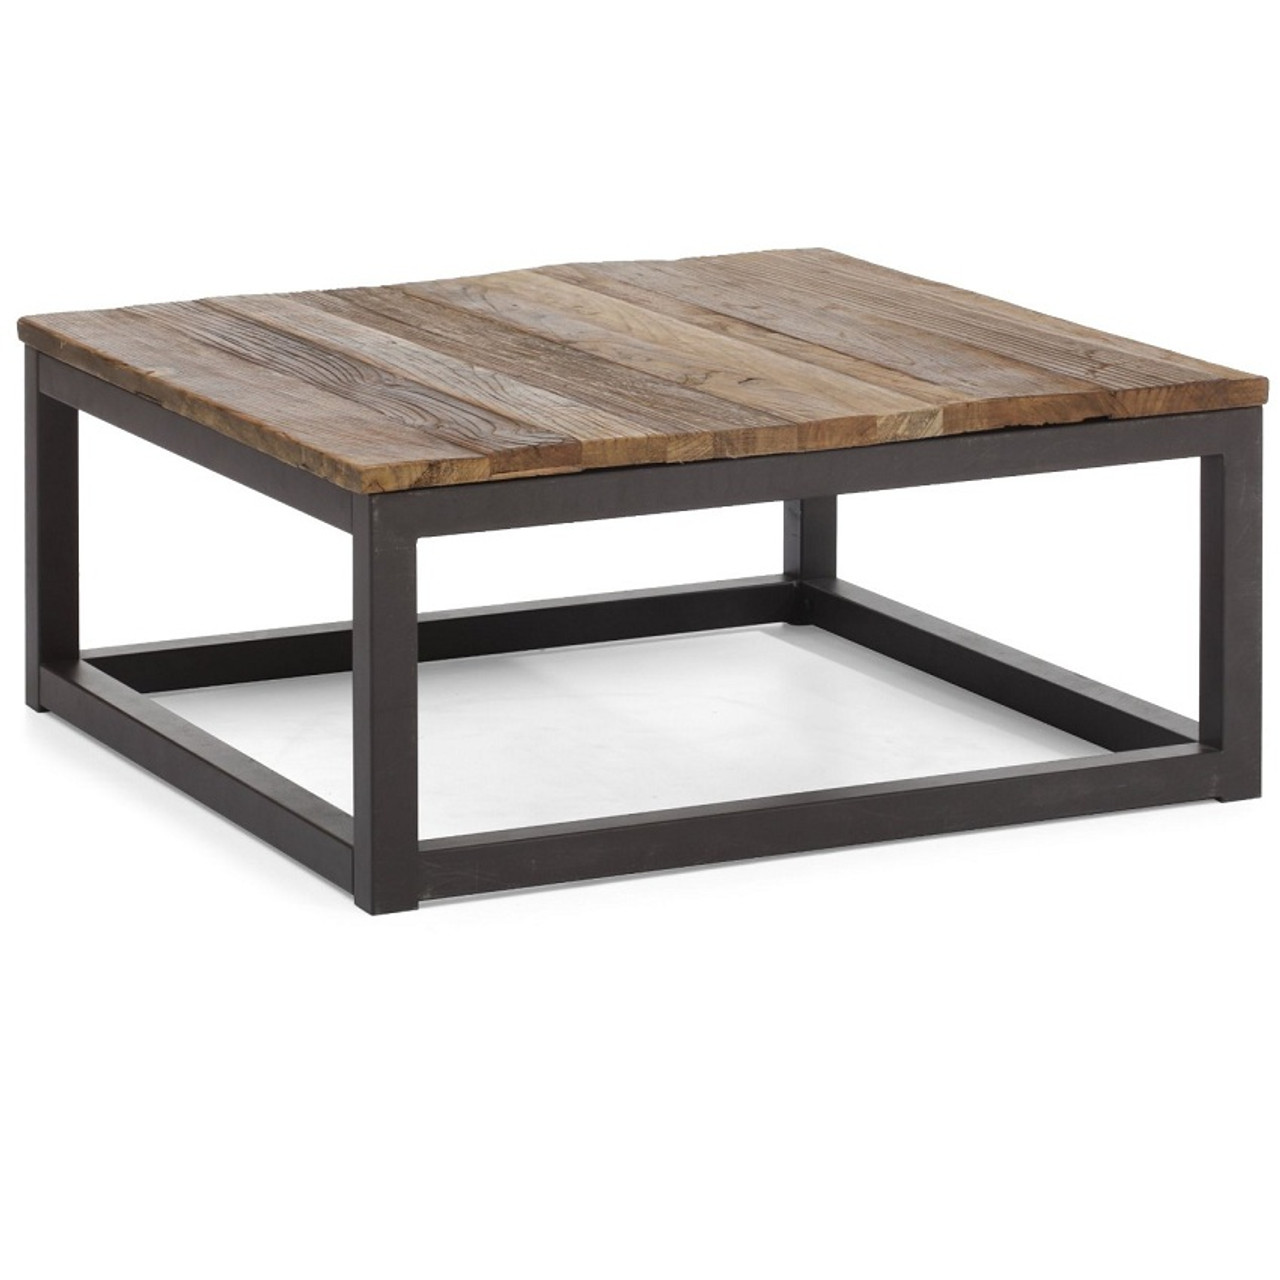 Civic Wood and Metal Square Coffee Table. Civic Wood and Metal Square Coffee Table   Zin Home